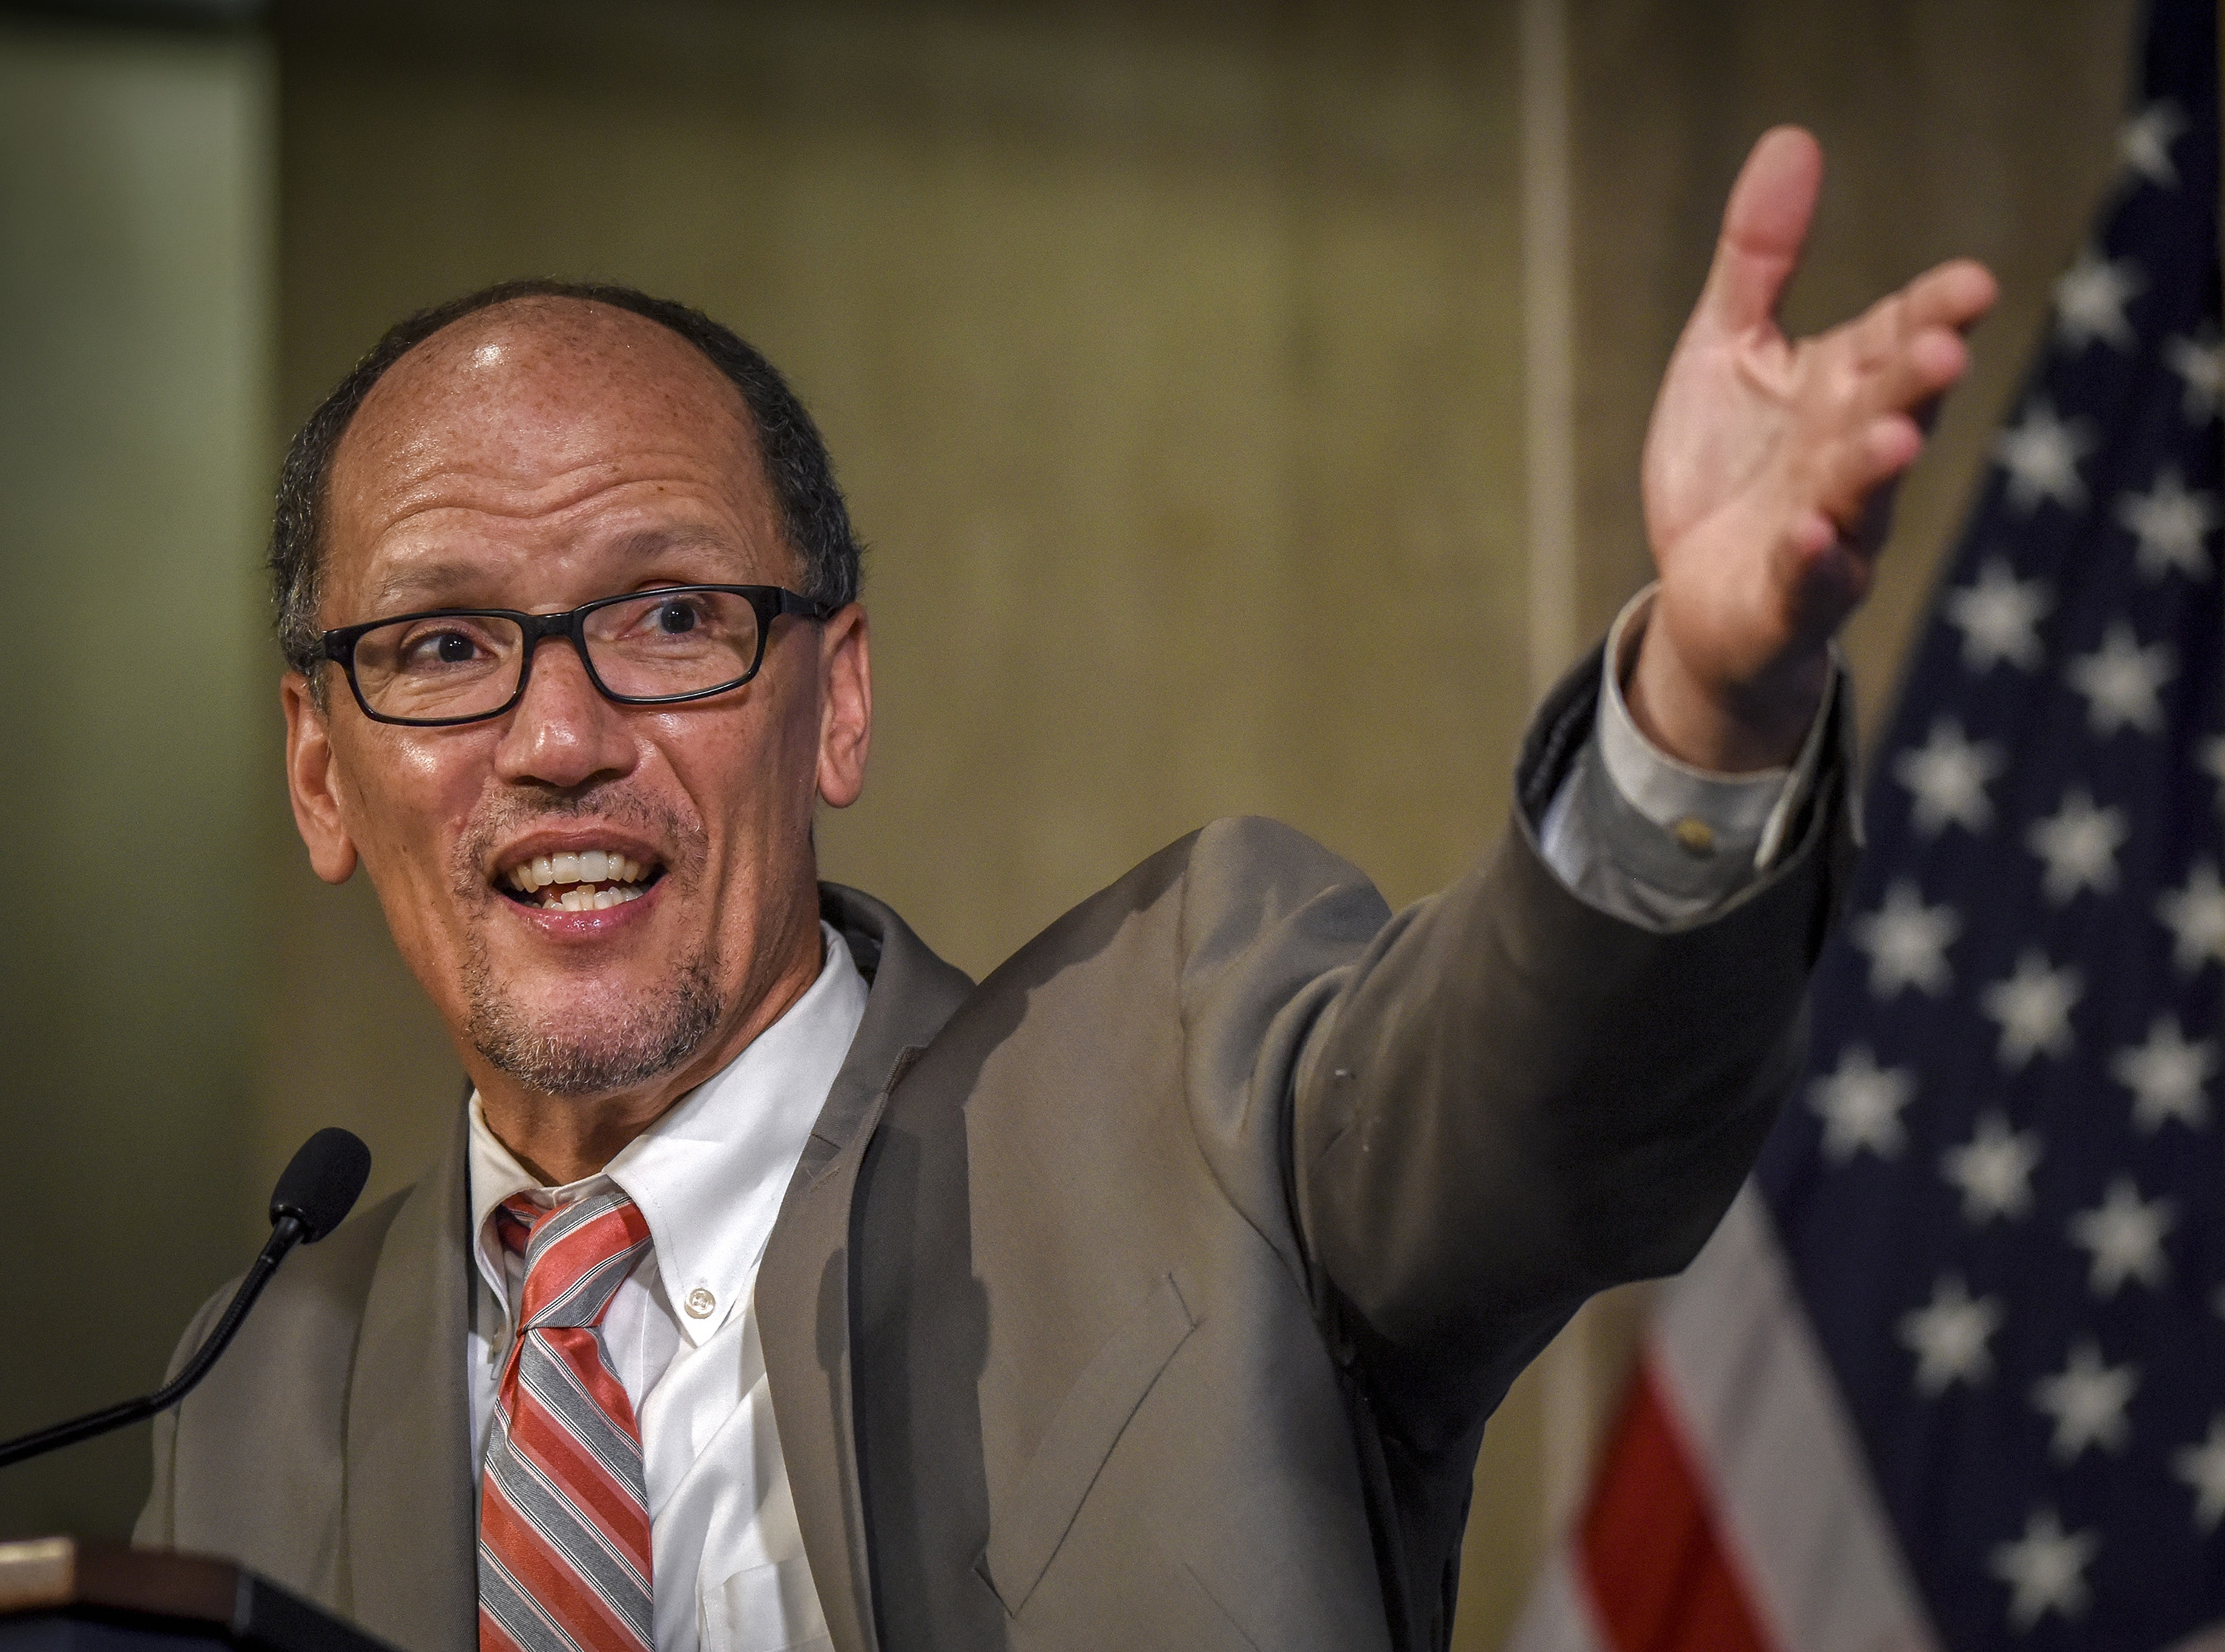 Snyder native Thomas Perez is said to be on the short list as Hillary Clinton's choice for running mate.